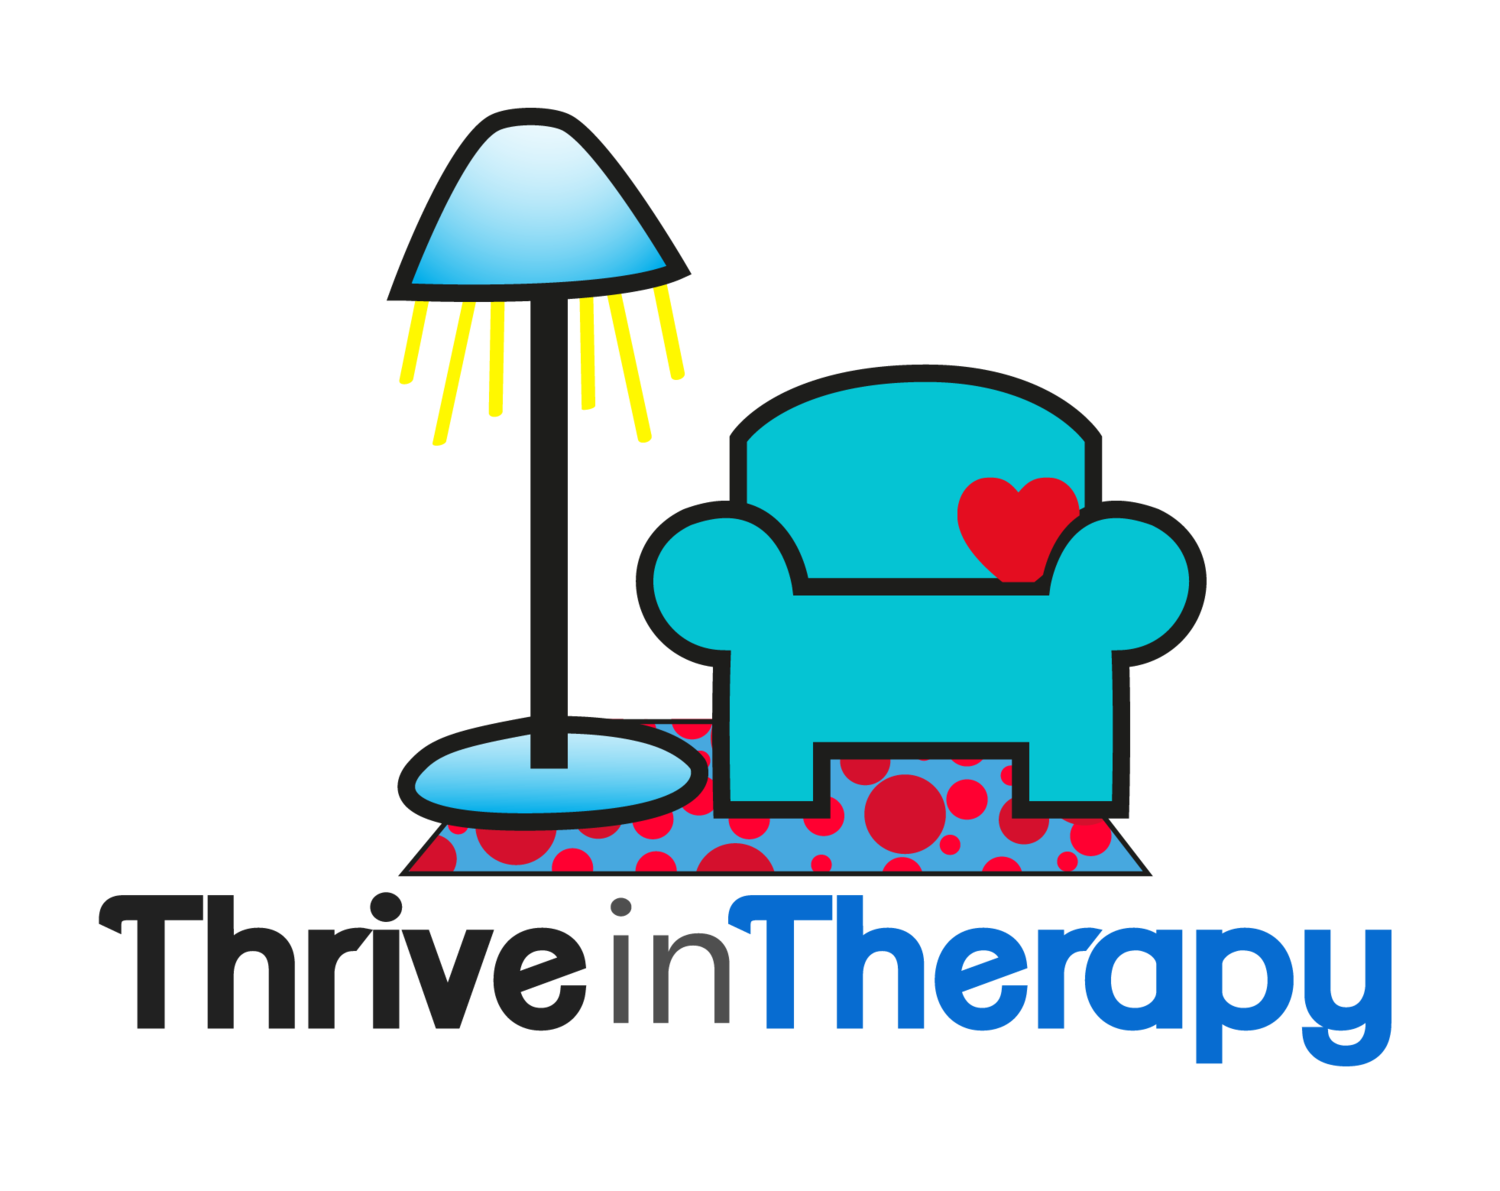 Finding a couples counselor. Counseling clipart couple therapy